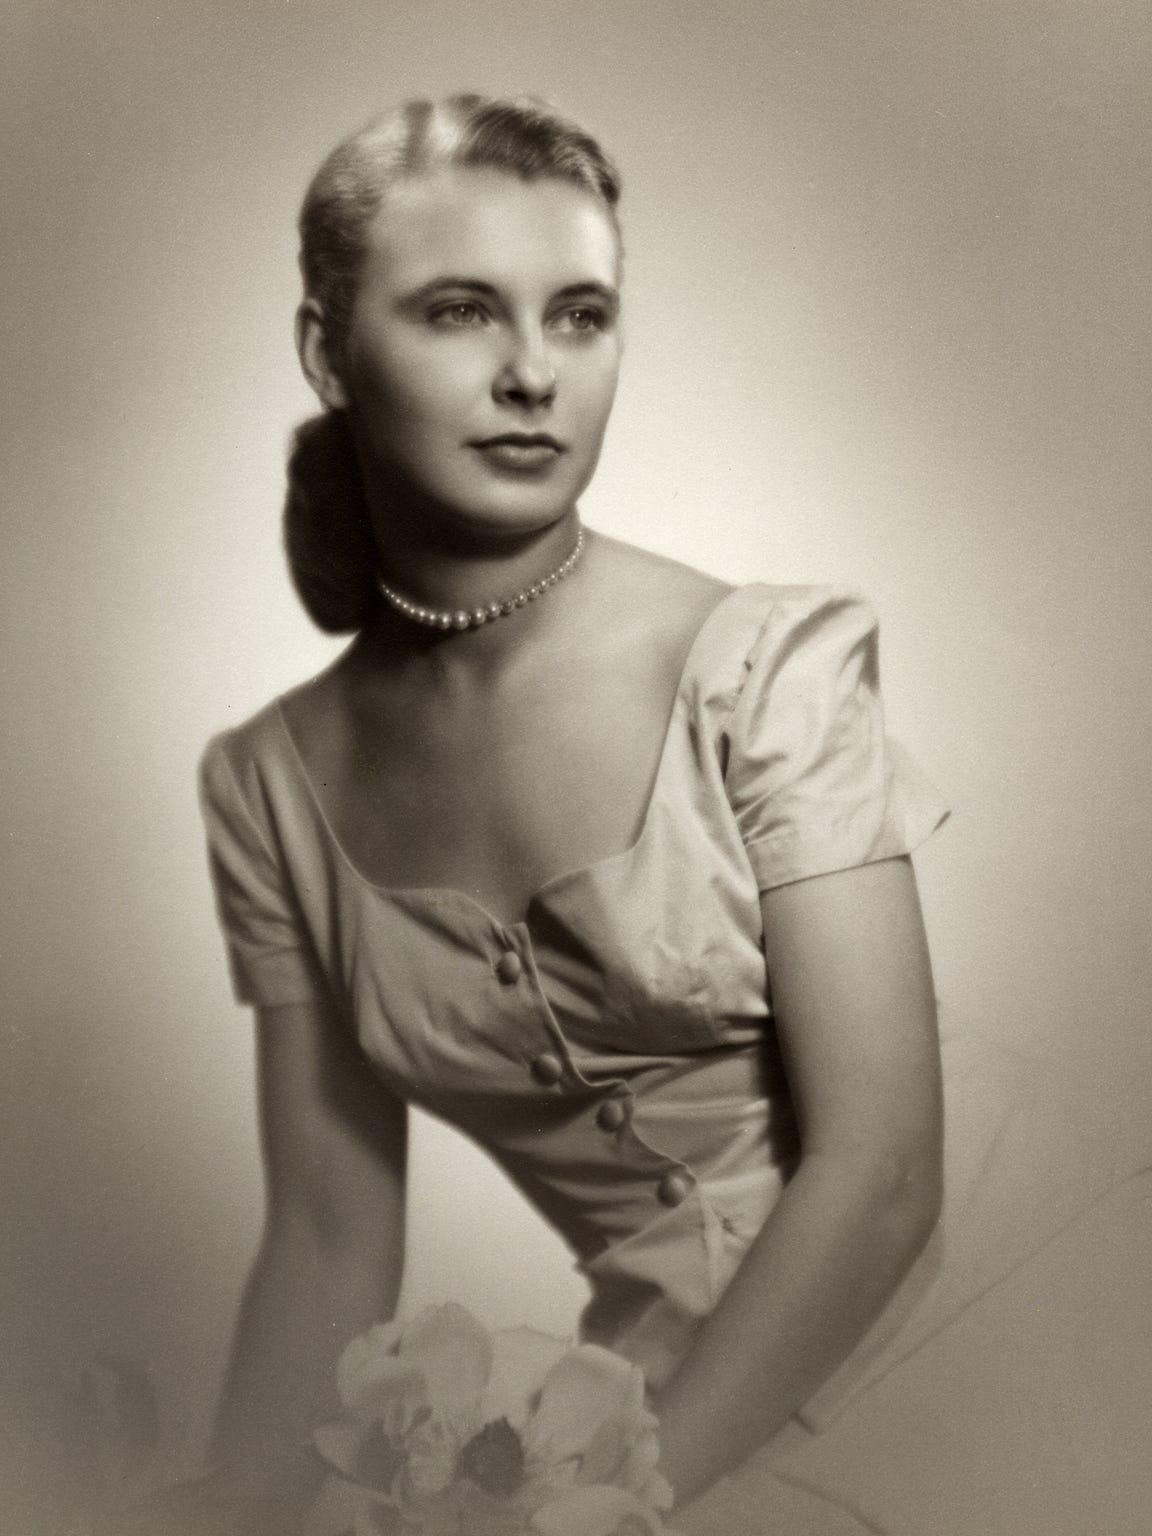 Hollywood legend Joanne Woodward was a teenager when